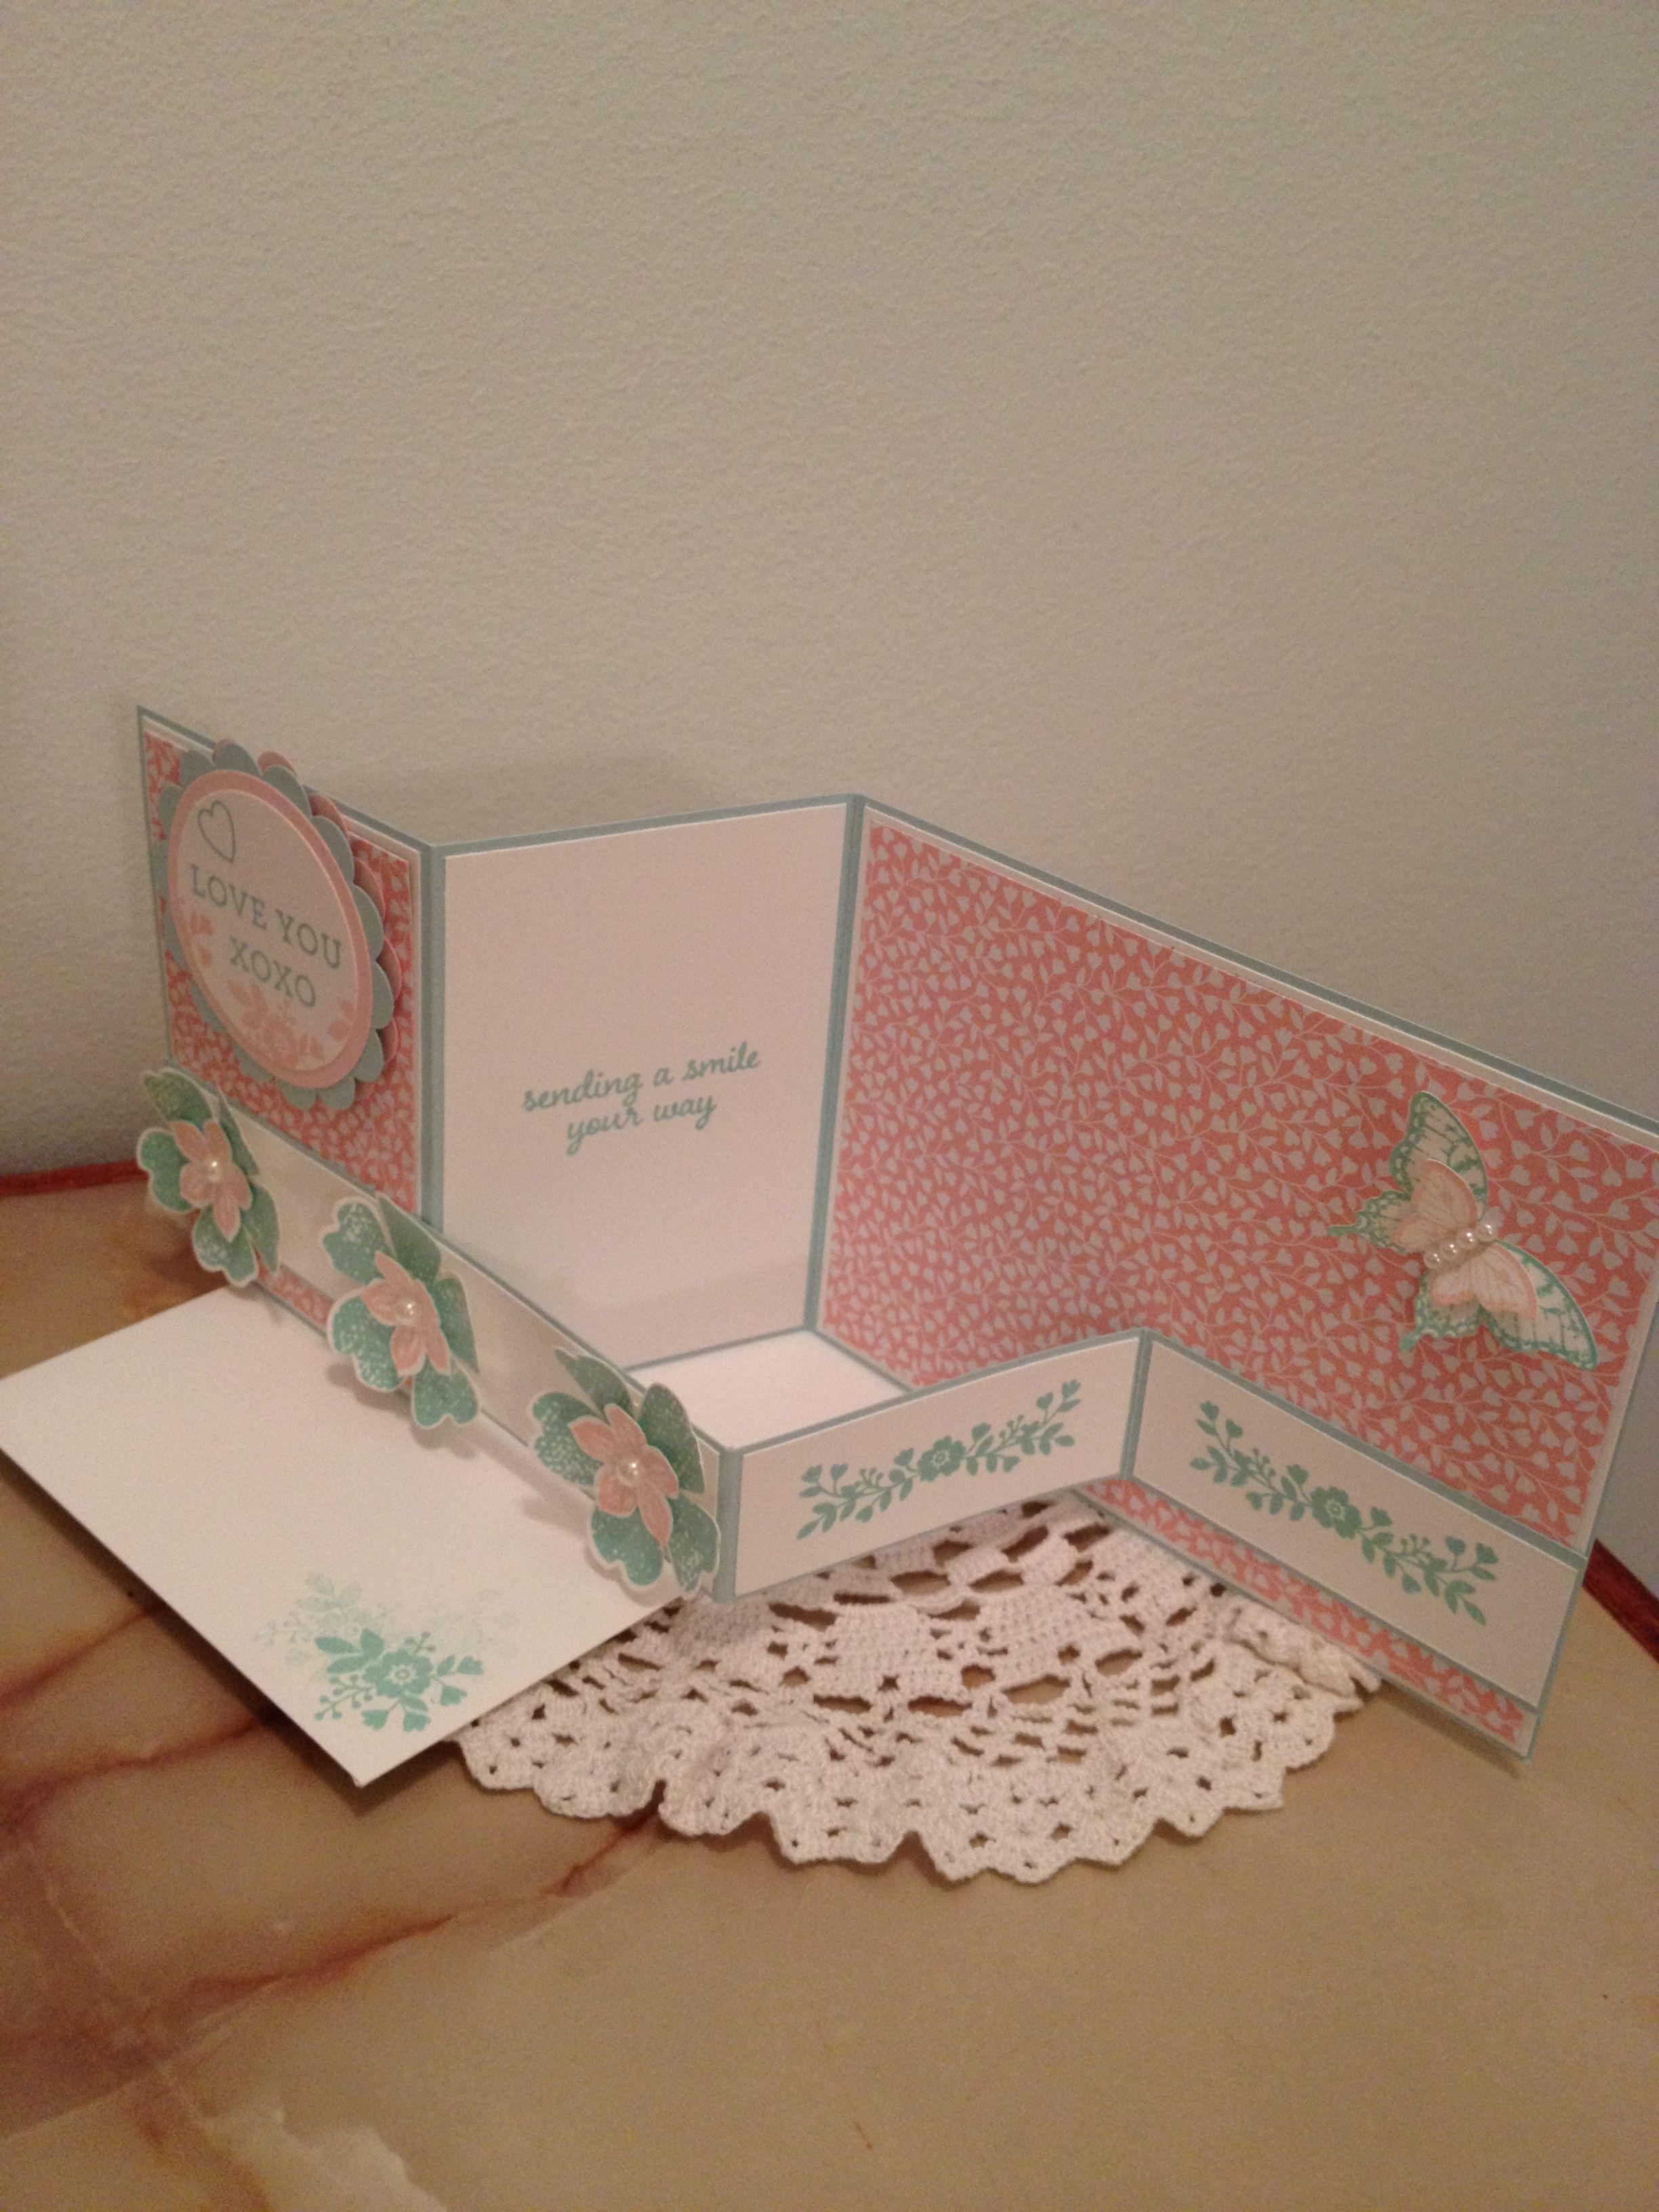 Made by Elna Andrade Stampin up Demonstrator